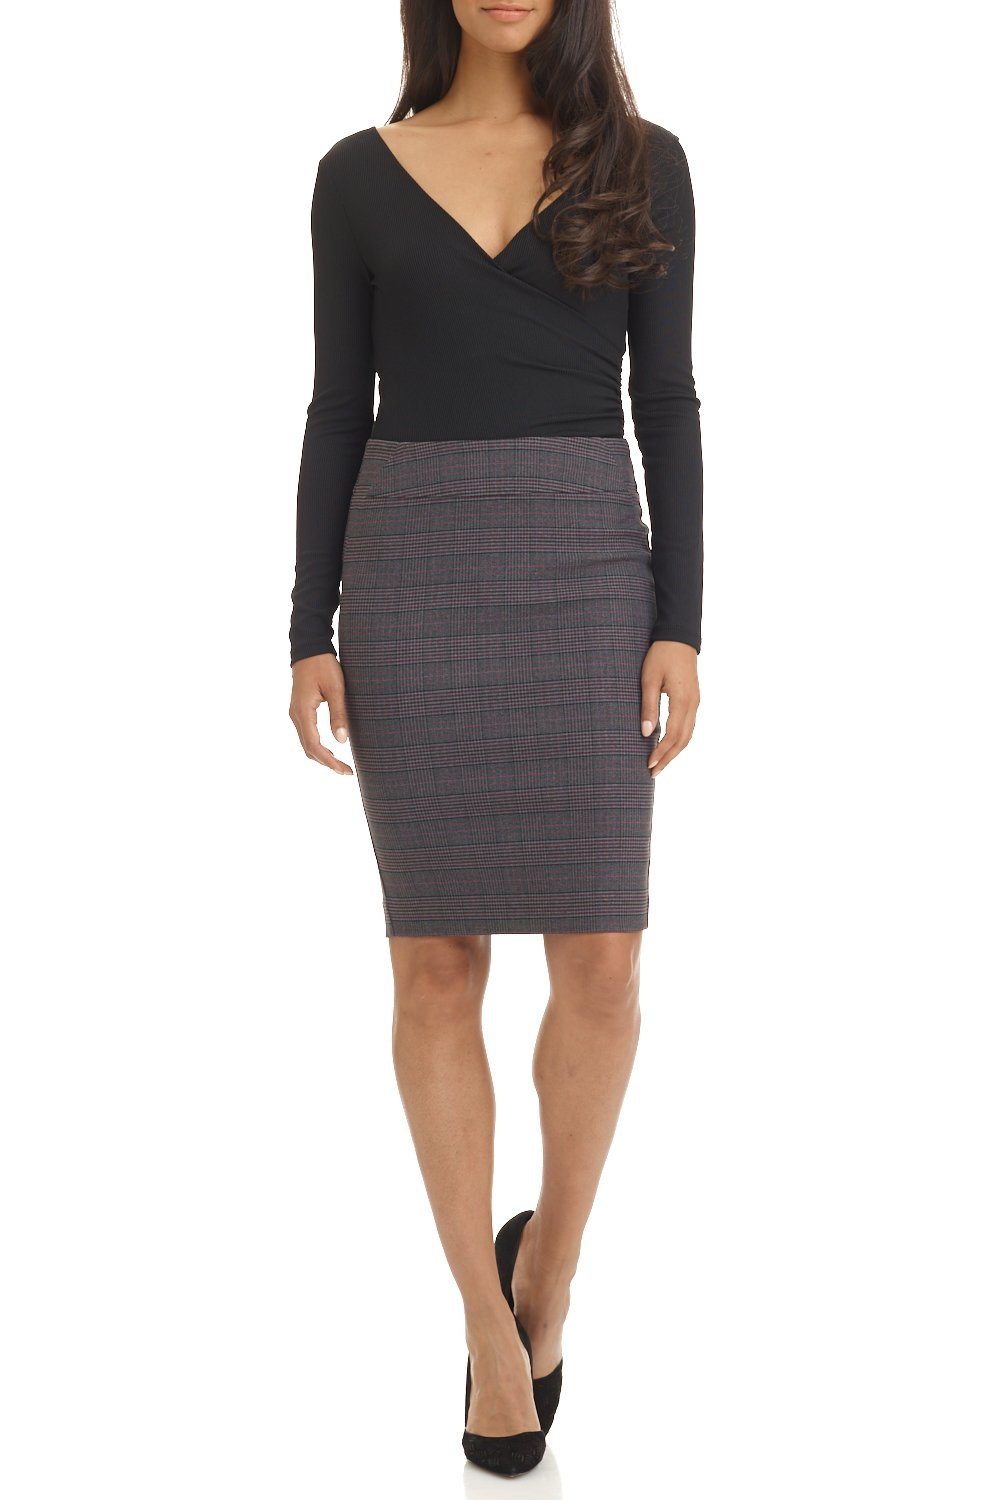 Rekucci Women's Ease in to Comfort Fit Perfect Midi Pencil Skirt (Medium,Charcoal/Wine)